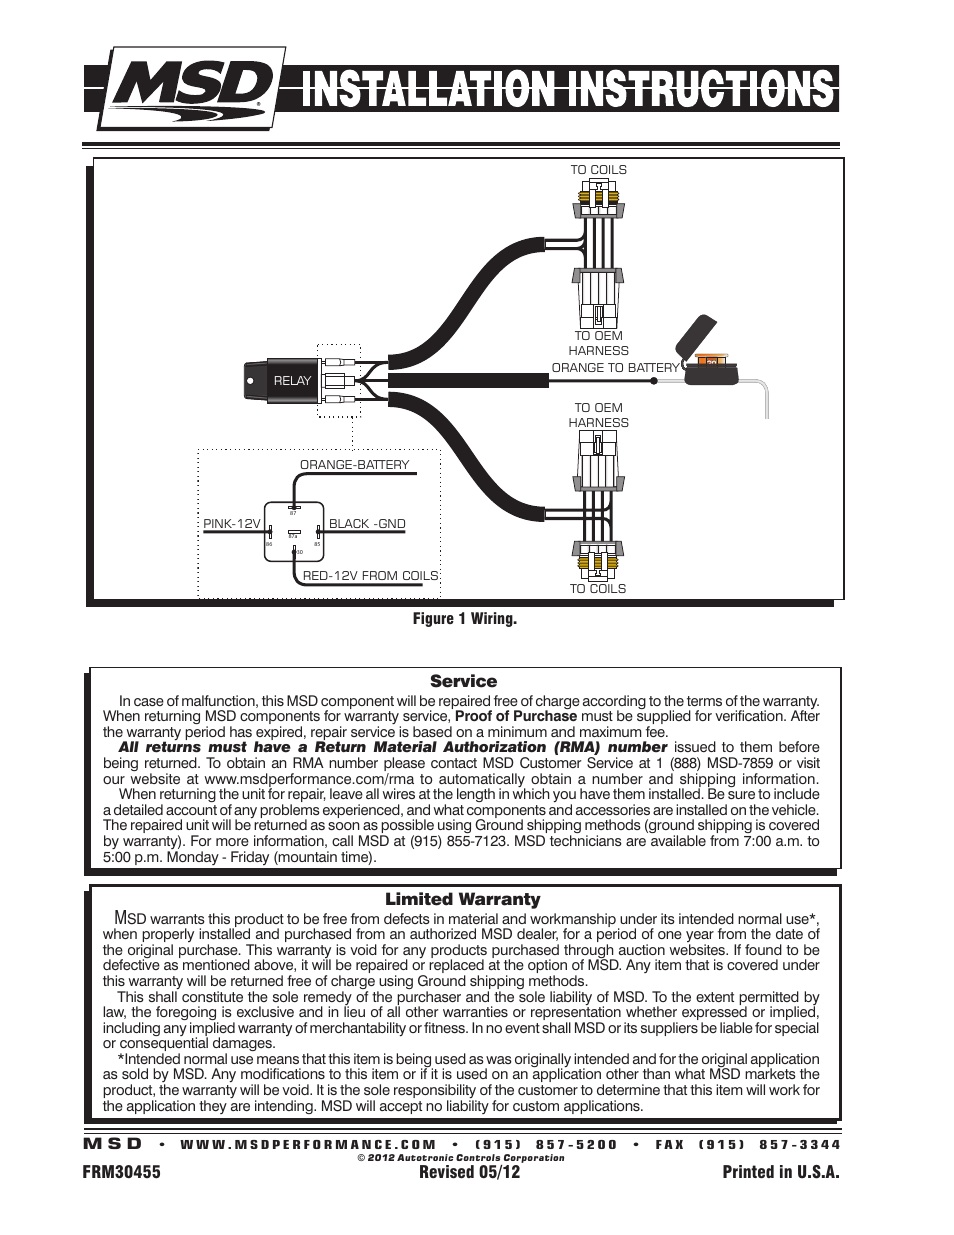 Limited warranty, Service | MSD 88867 LS Coil Harness Installation User  Manual | Page 2 / 2